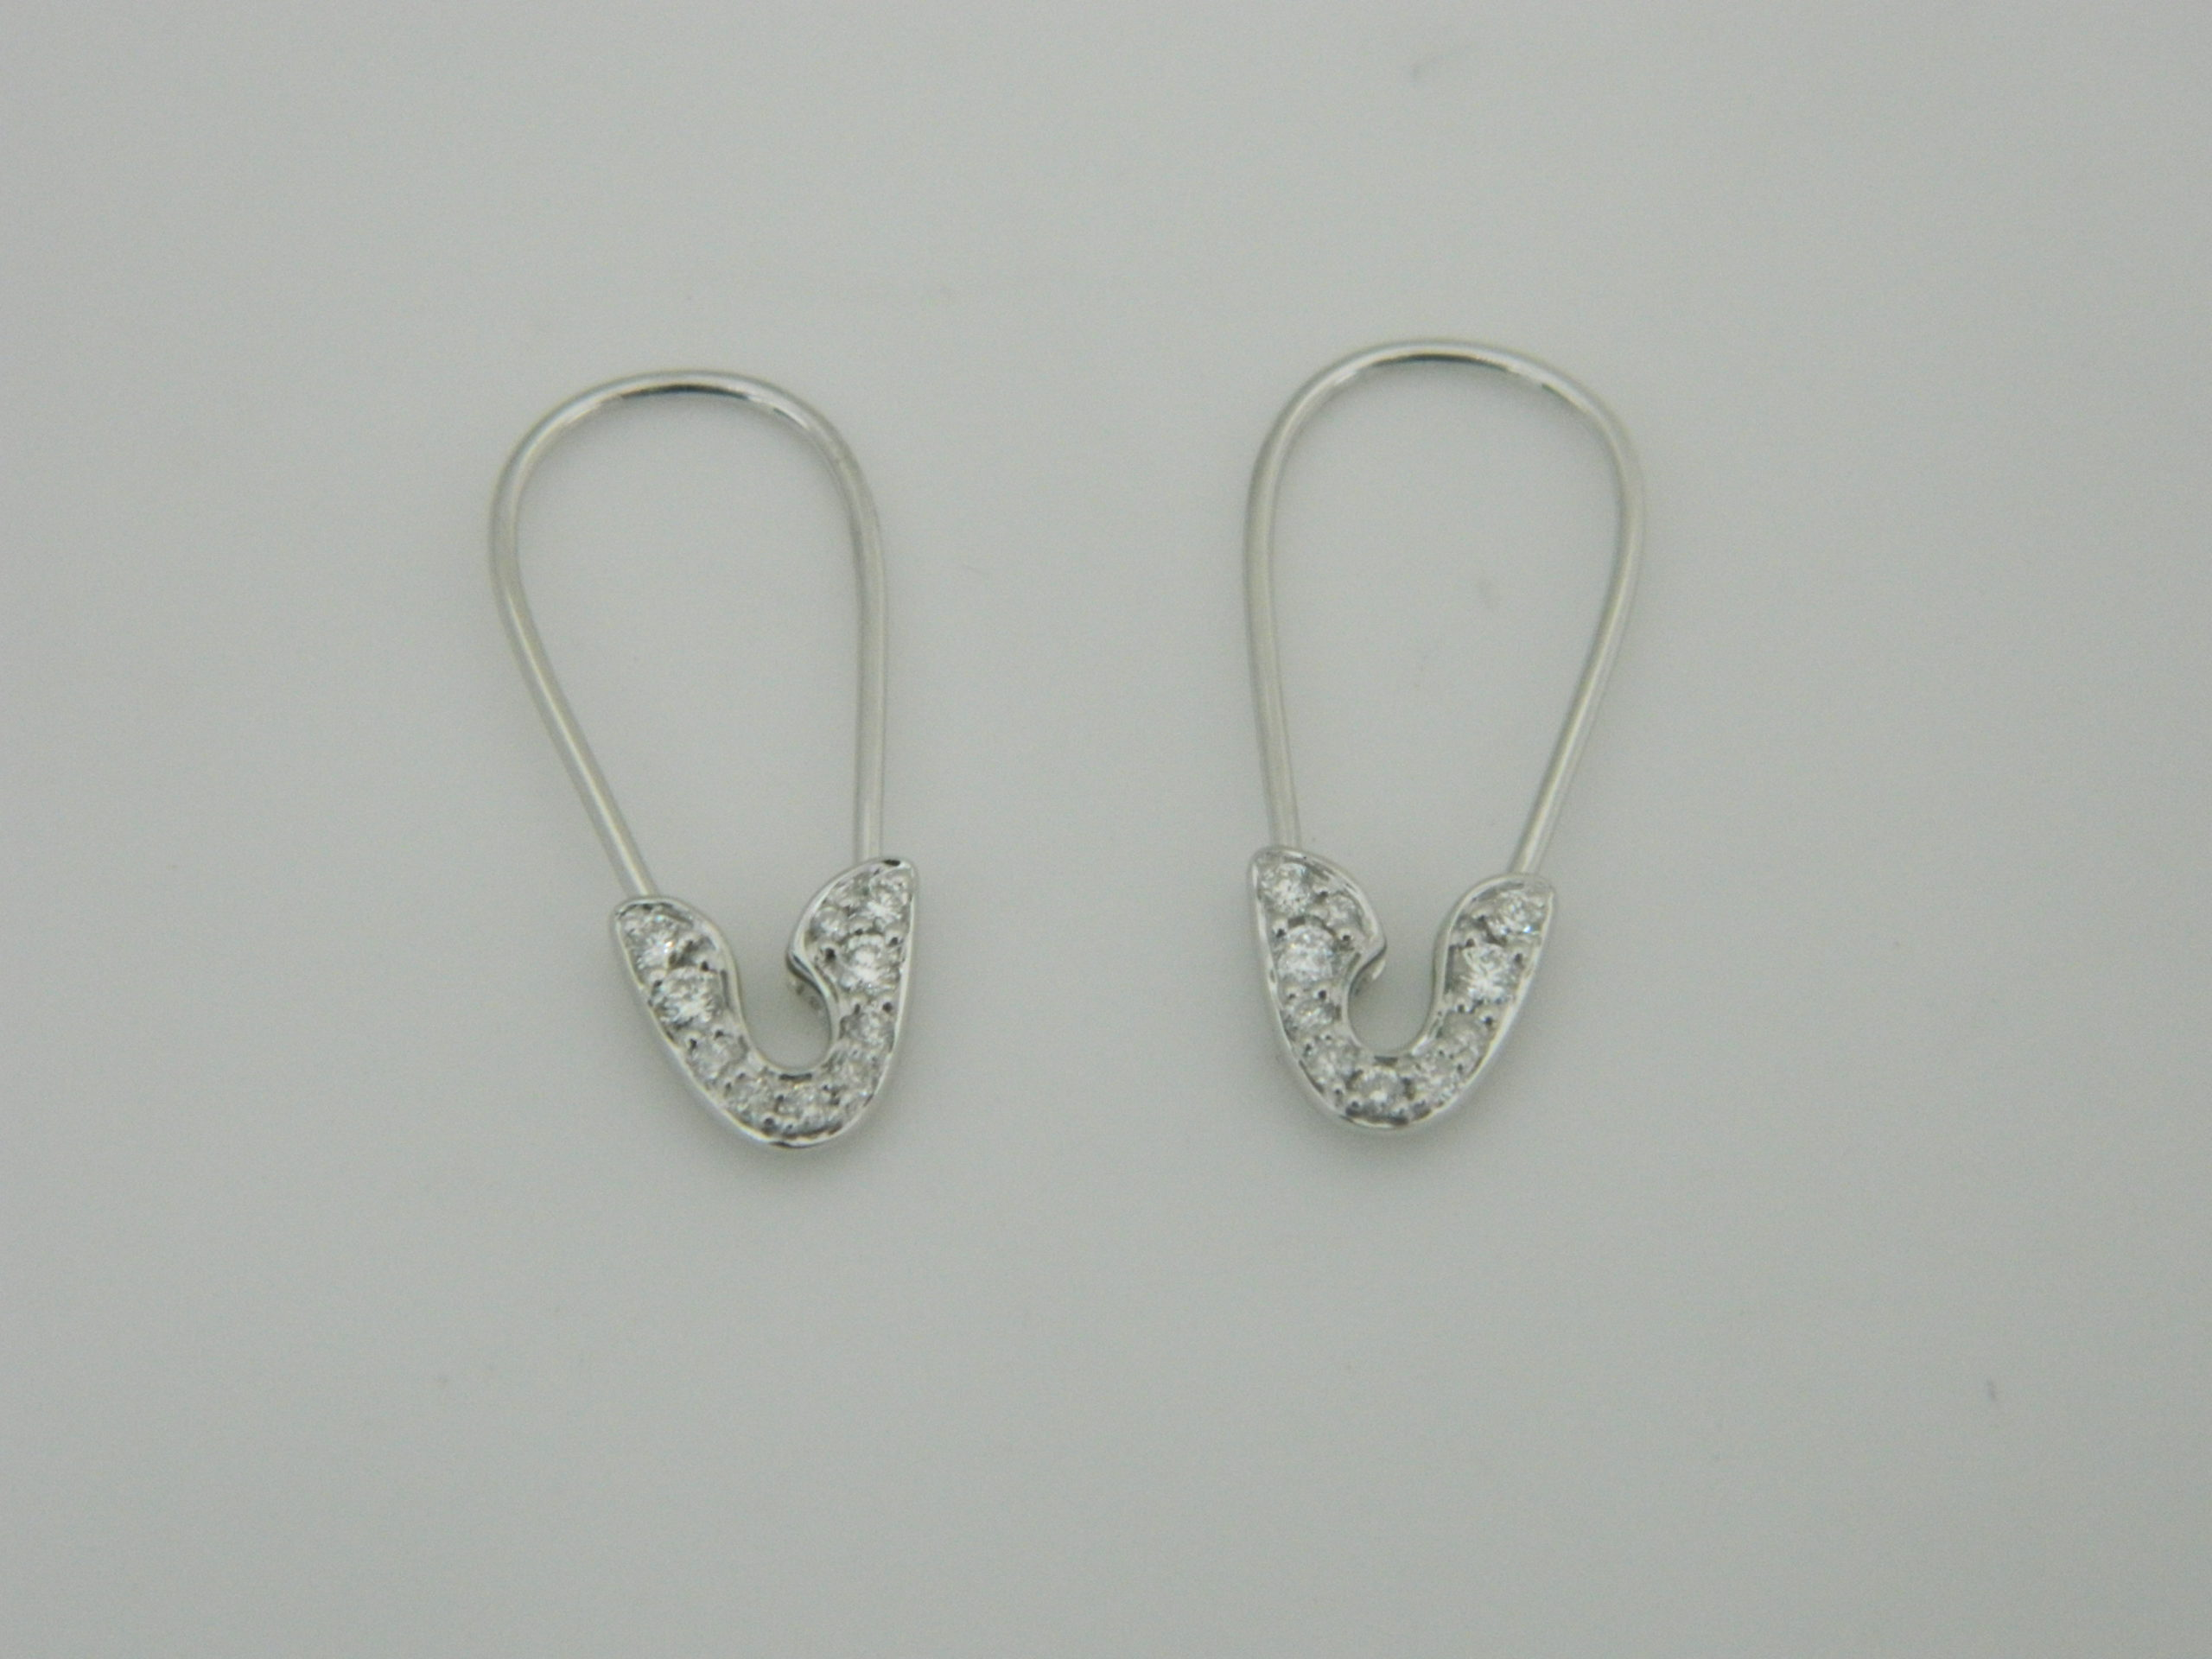 18 Karat White Gold Drop Mounted Earrings with 20 Round Cut Diamonds weighing 0.22ct tw. - 23MM